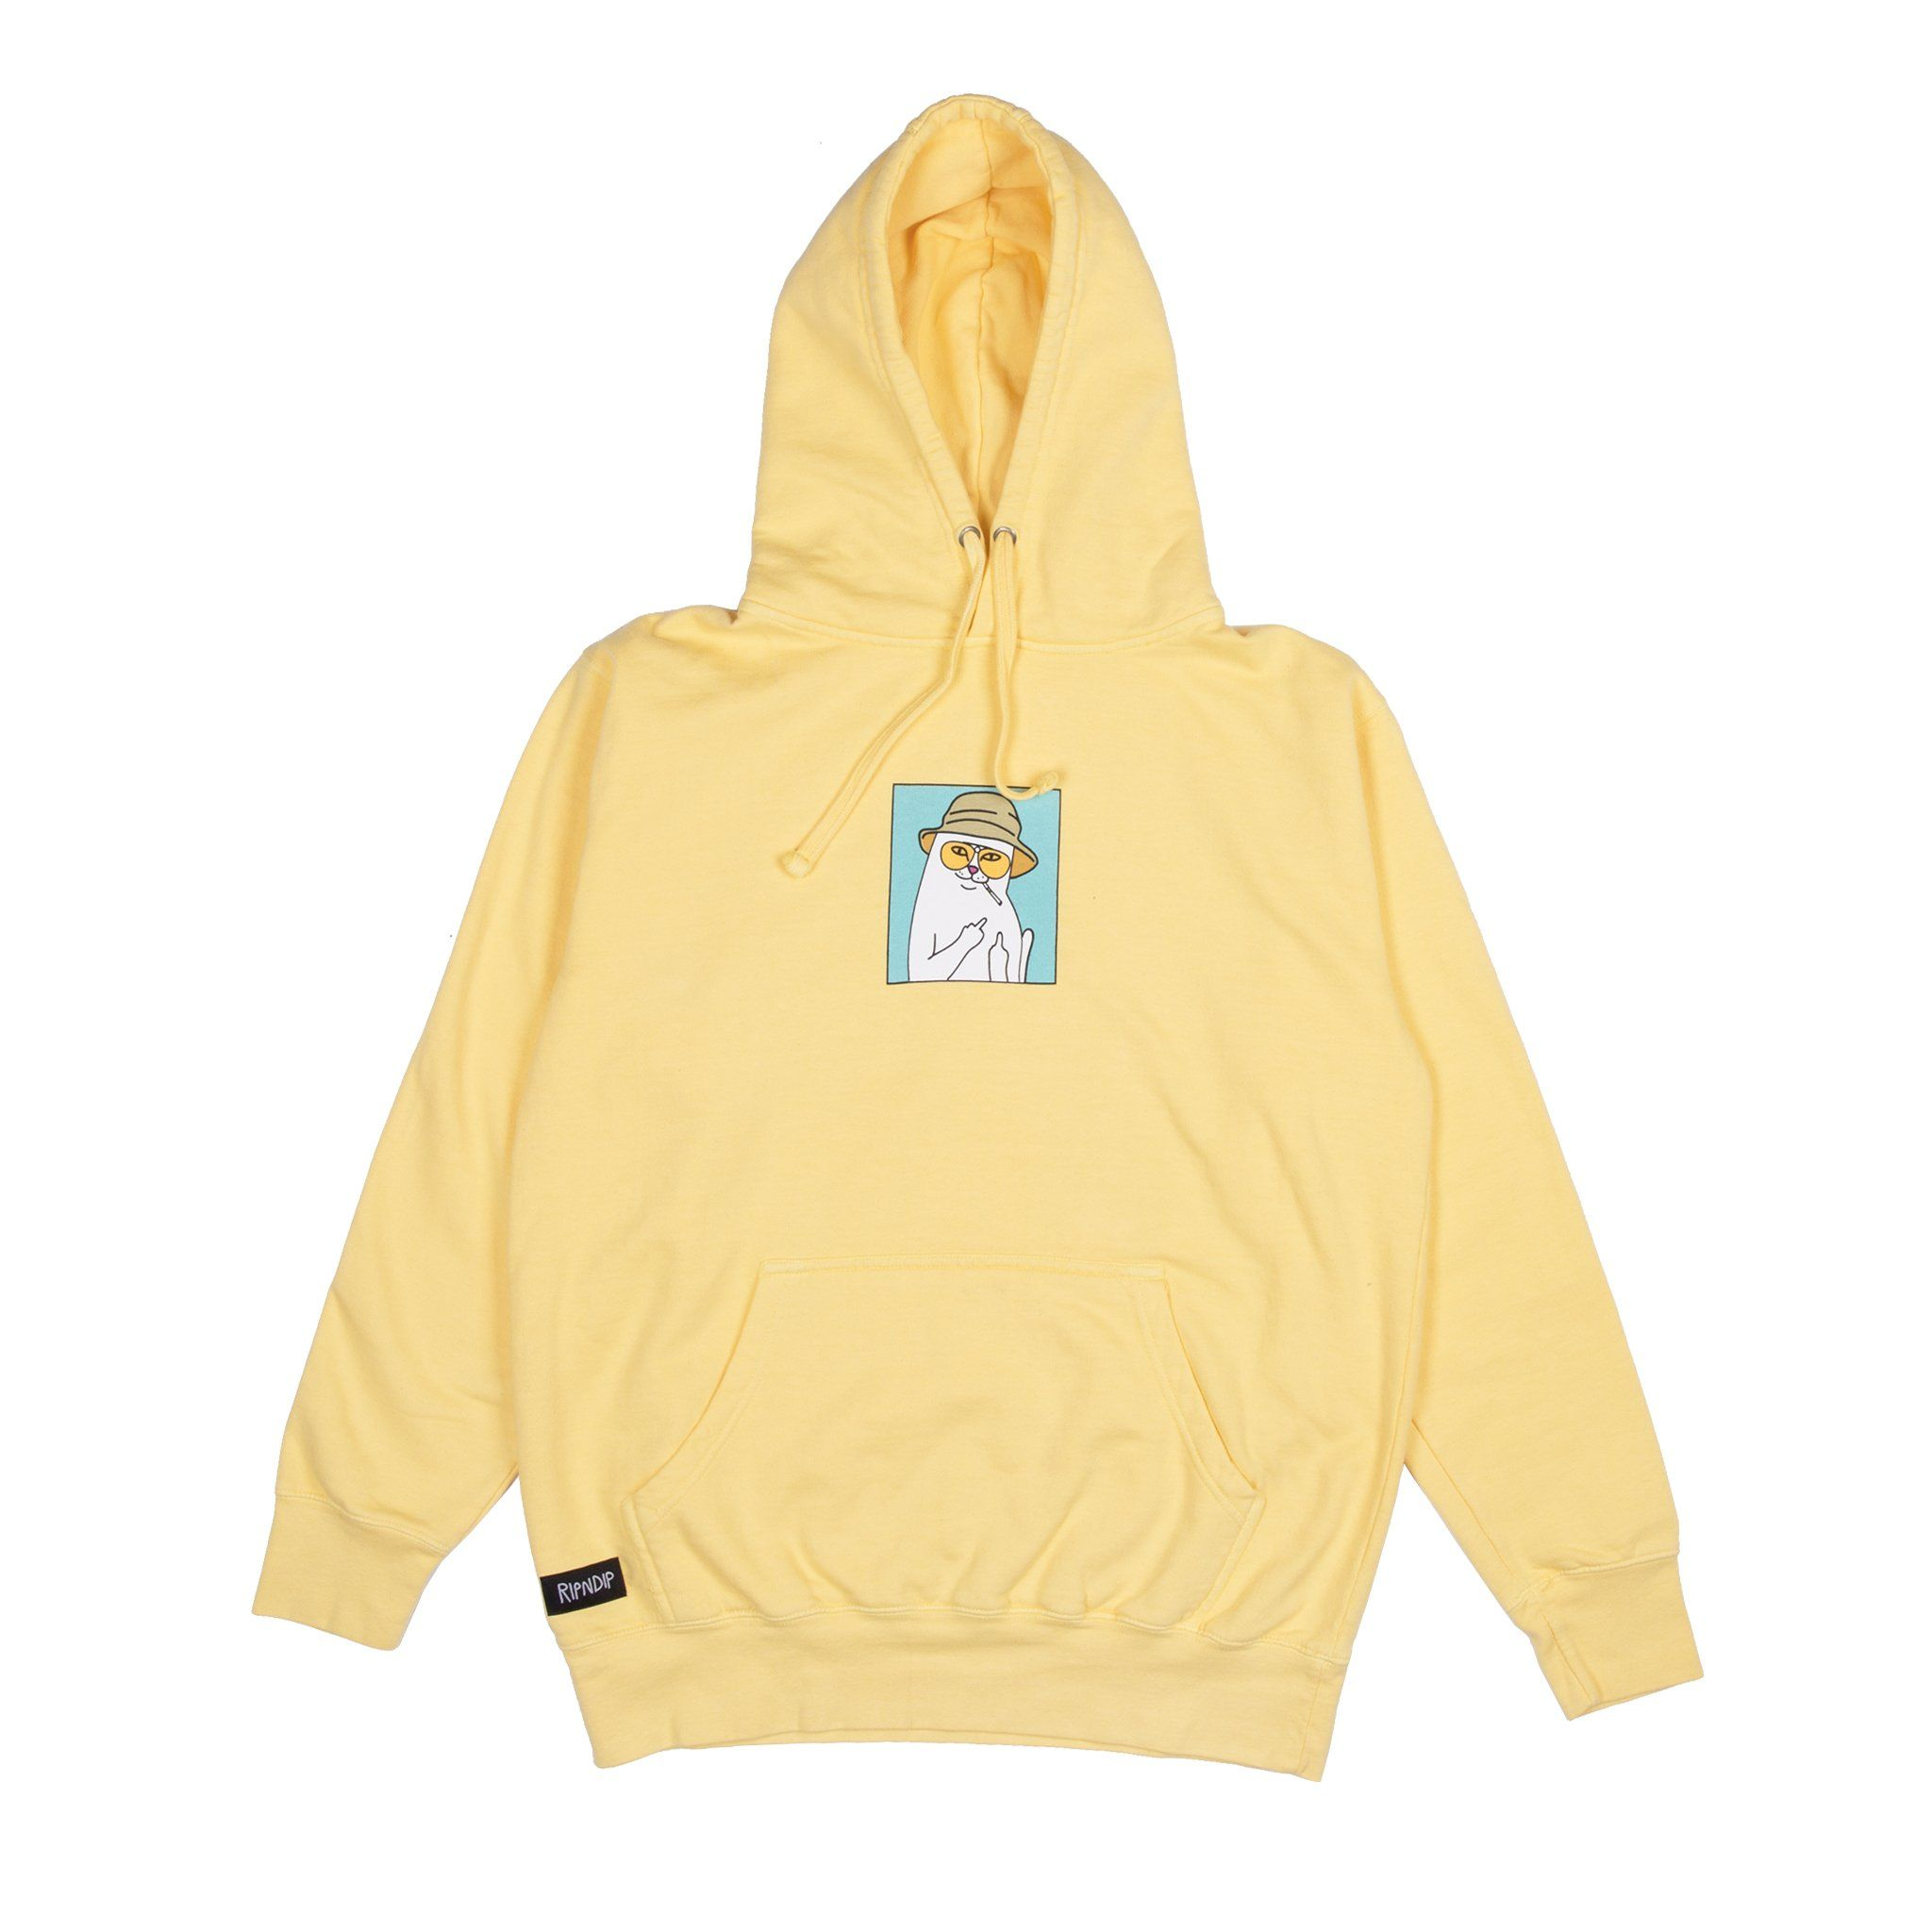 a7e2c4affcca2 Nermal S. Thompson Hoodie (Yellow) | clothes | Yellow hoodie ...